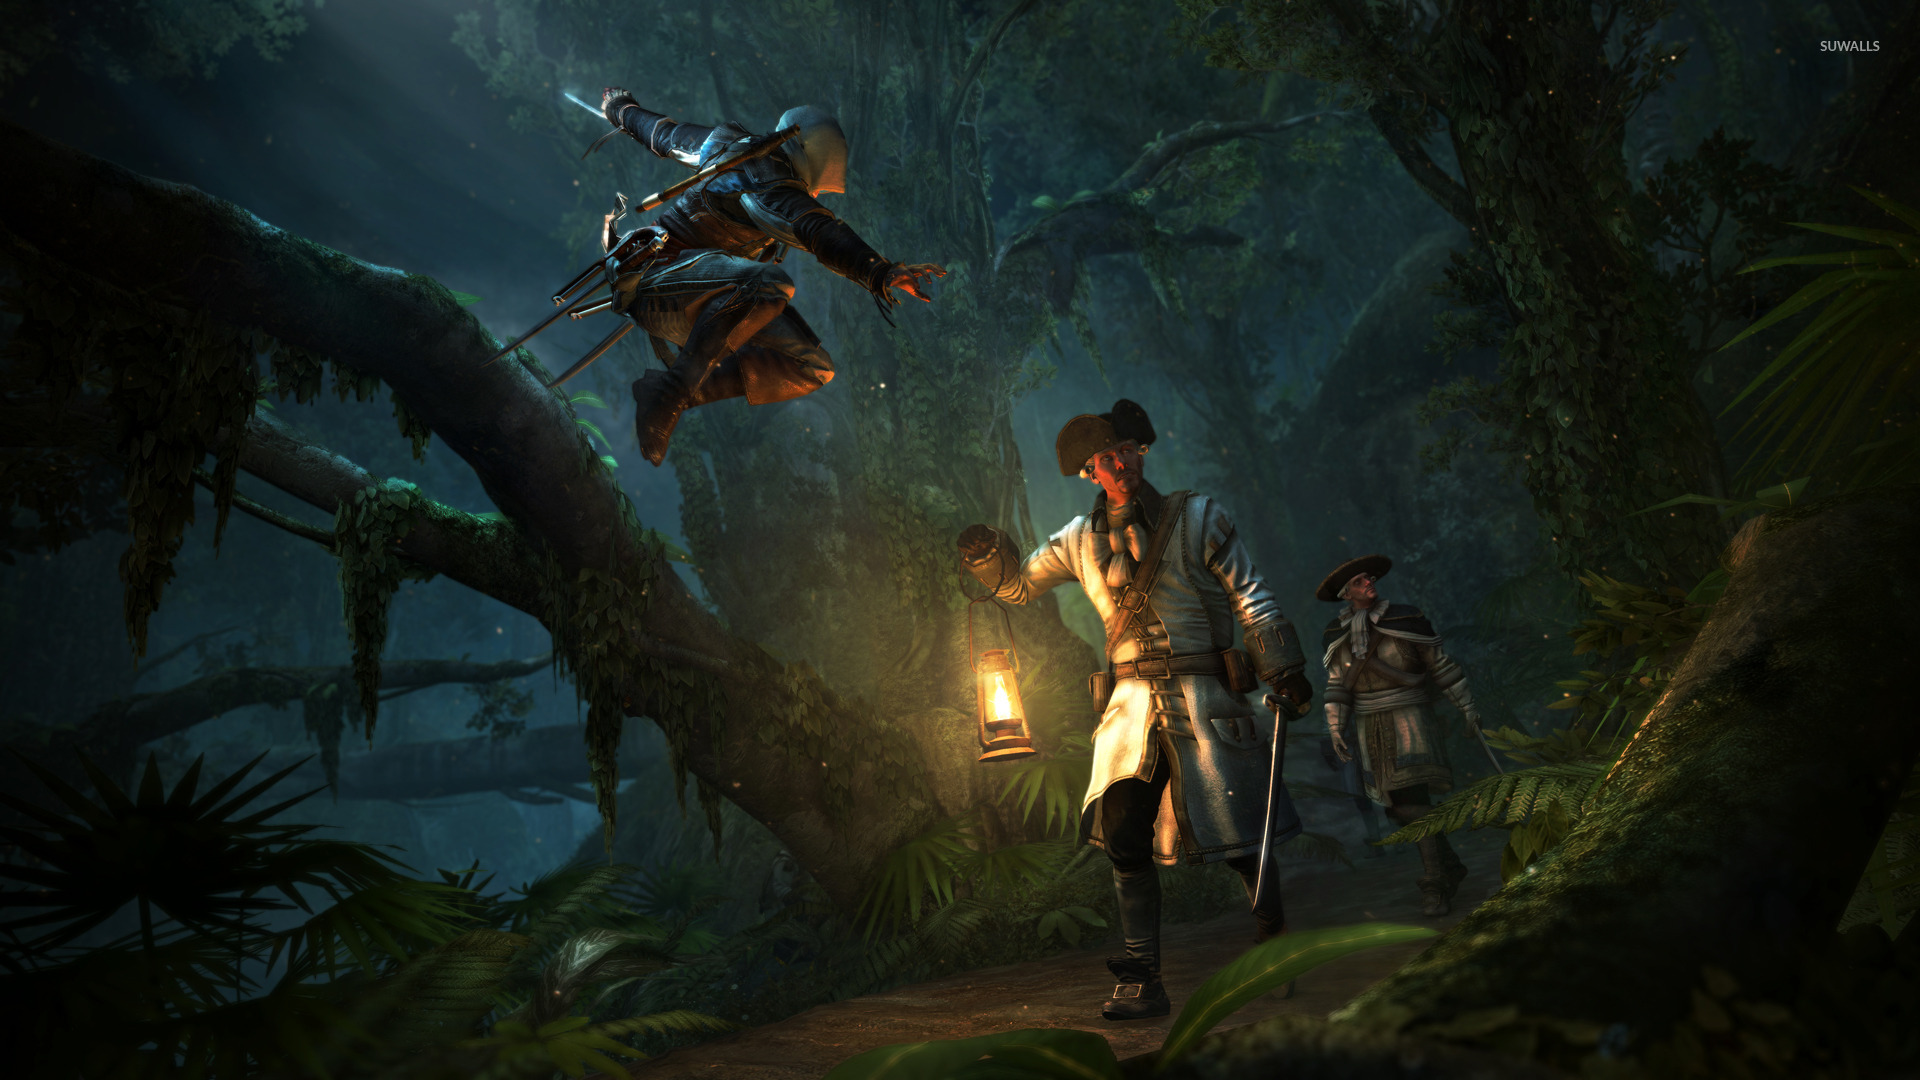 Download The Assassin S Creed Iv Black Flag Wallpapers: Assassin's Creed IV: Black Flag [14] Wallpaper